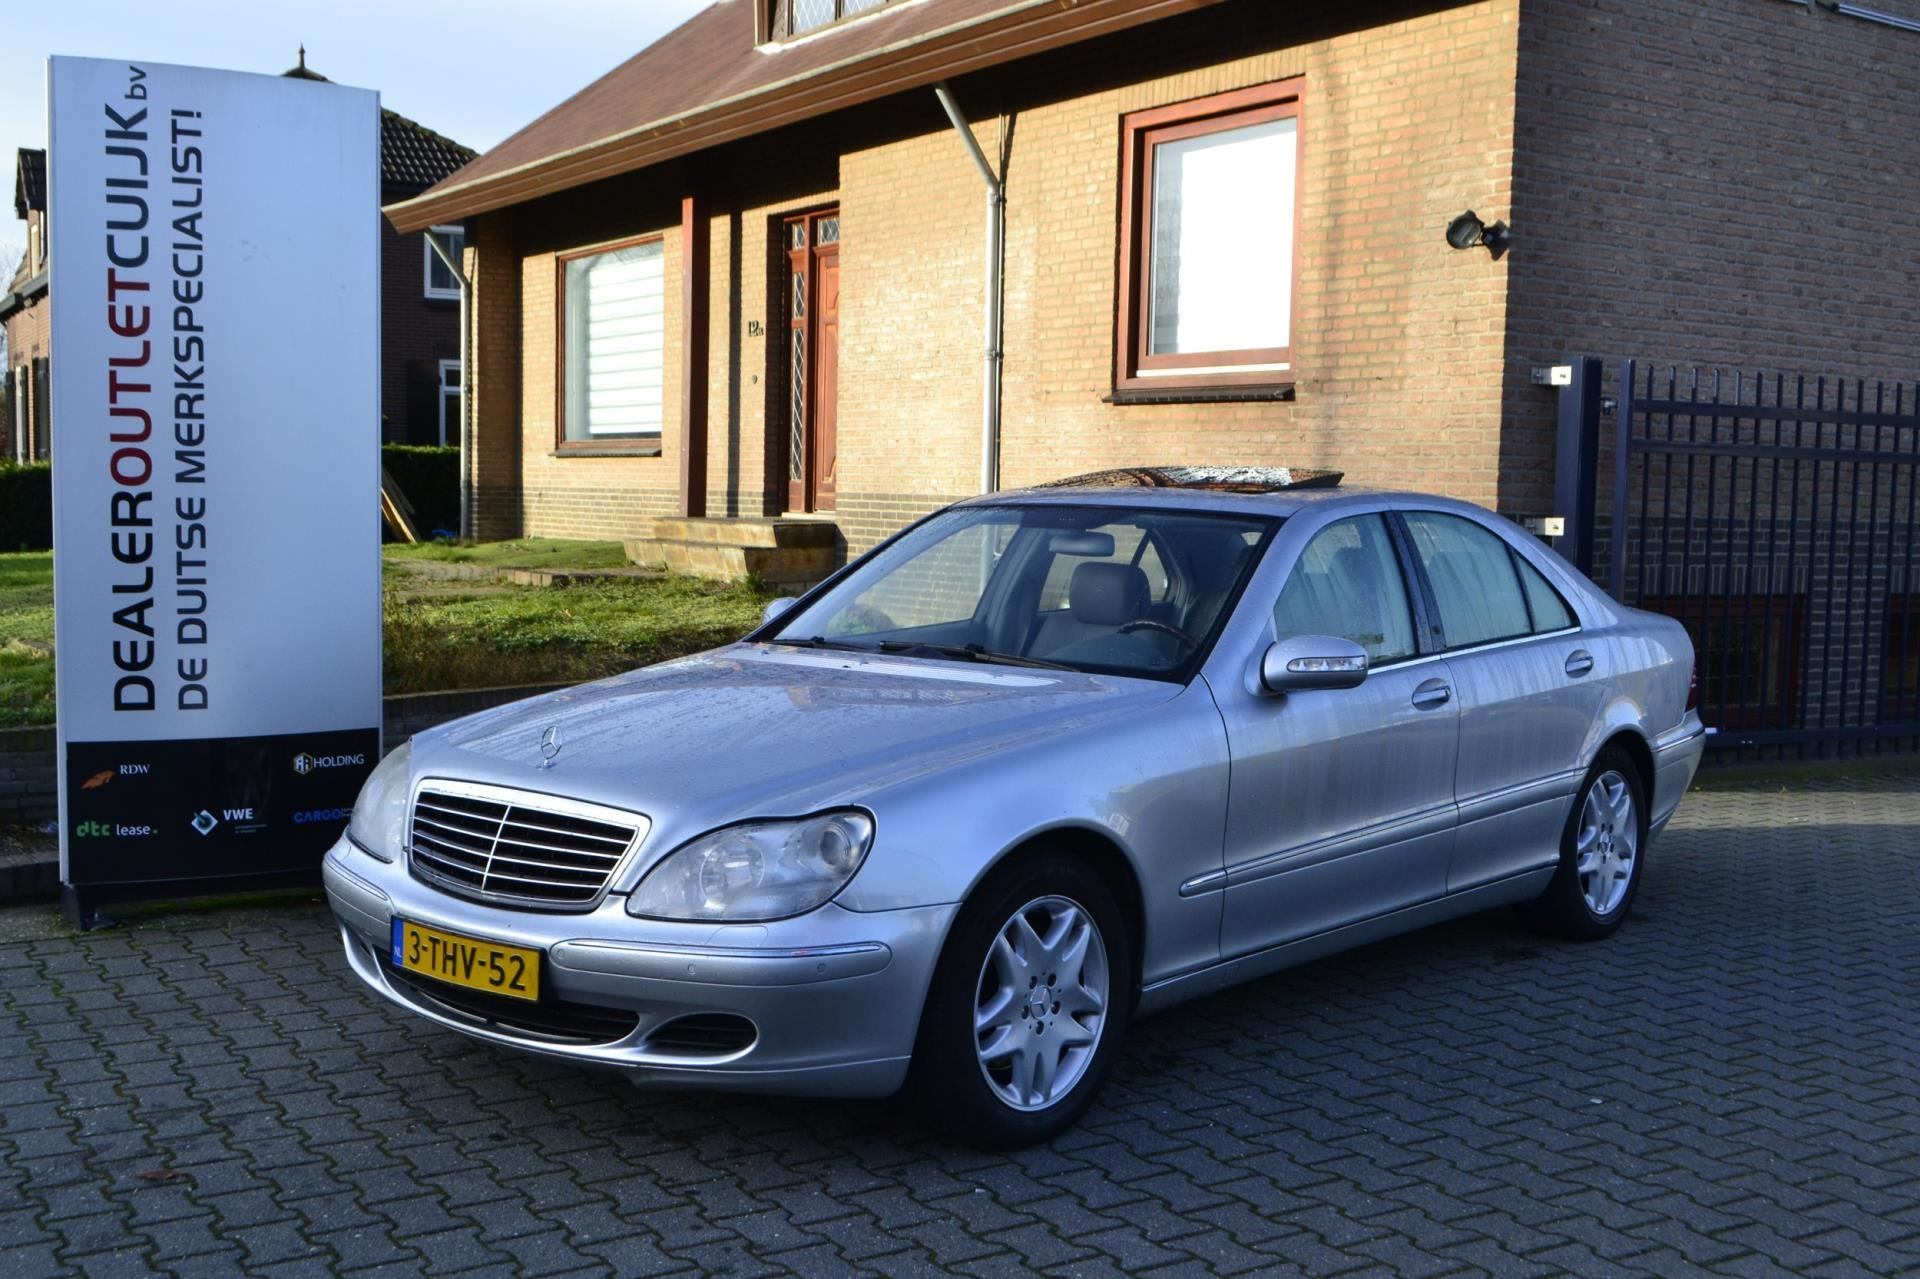 Mercedes-Benz S-klasse occasion - Dealer Outlet Cuijk b.v.